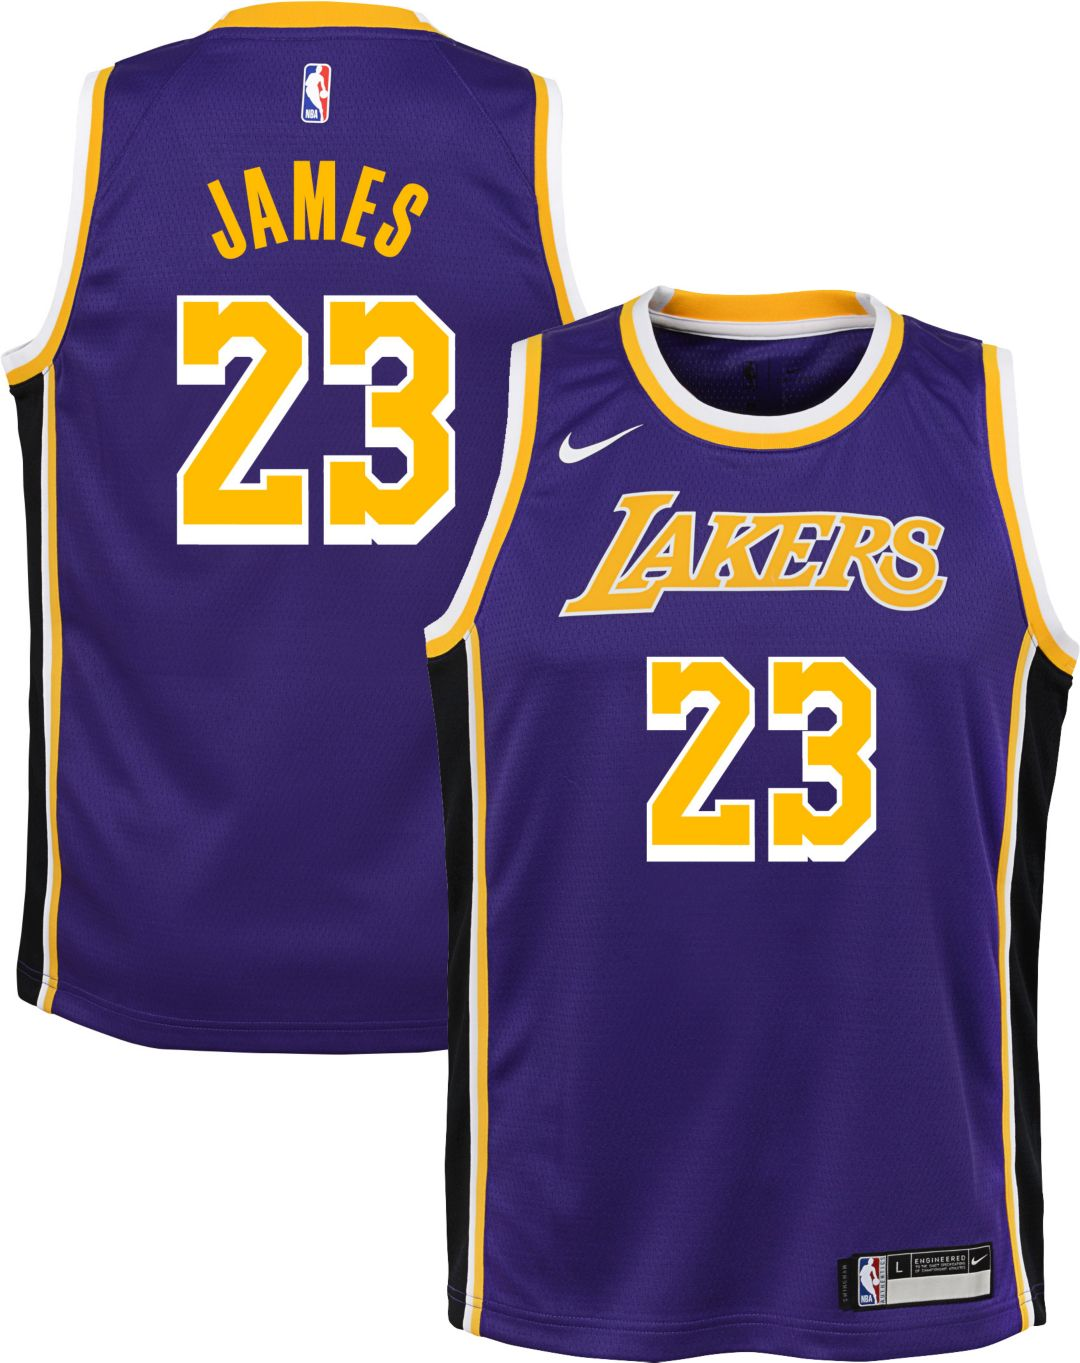 more photos 6c2e4 71f50 Nike Youth Los Angeles Lakers LeBron James Dri-FIT Purple Swingman Jersey